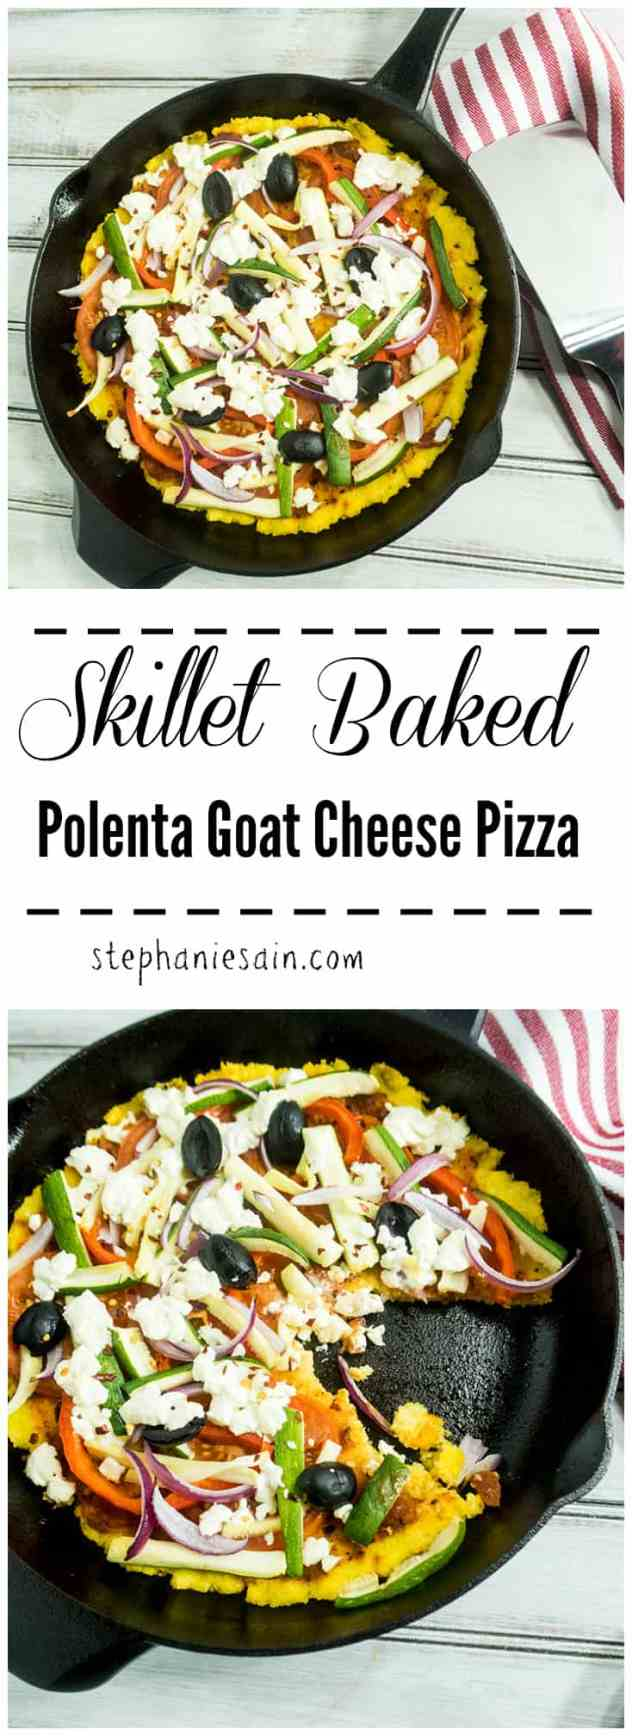 Skillet Baked Polenta Goat Cheese Pizza is a great way to switch up Pizza night and make a fun easy dinner. Toppings can be customzied. Gluten free, vegetarian, and vegan option available depending on toppings.